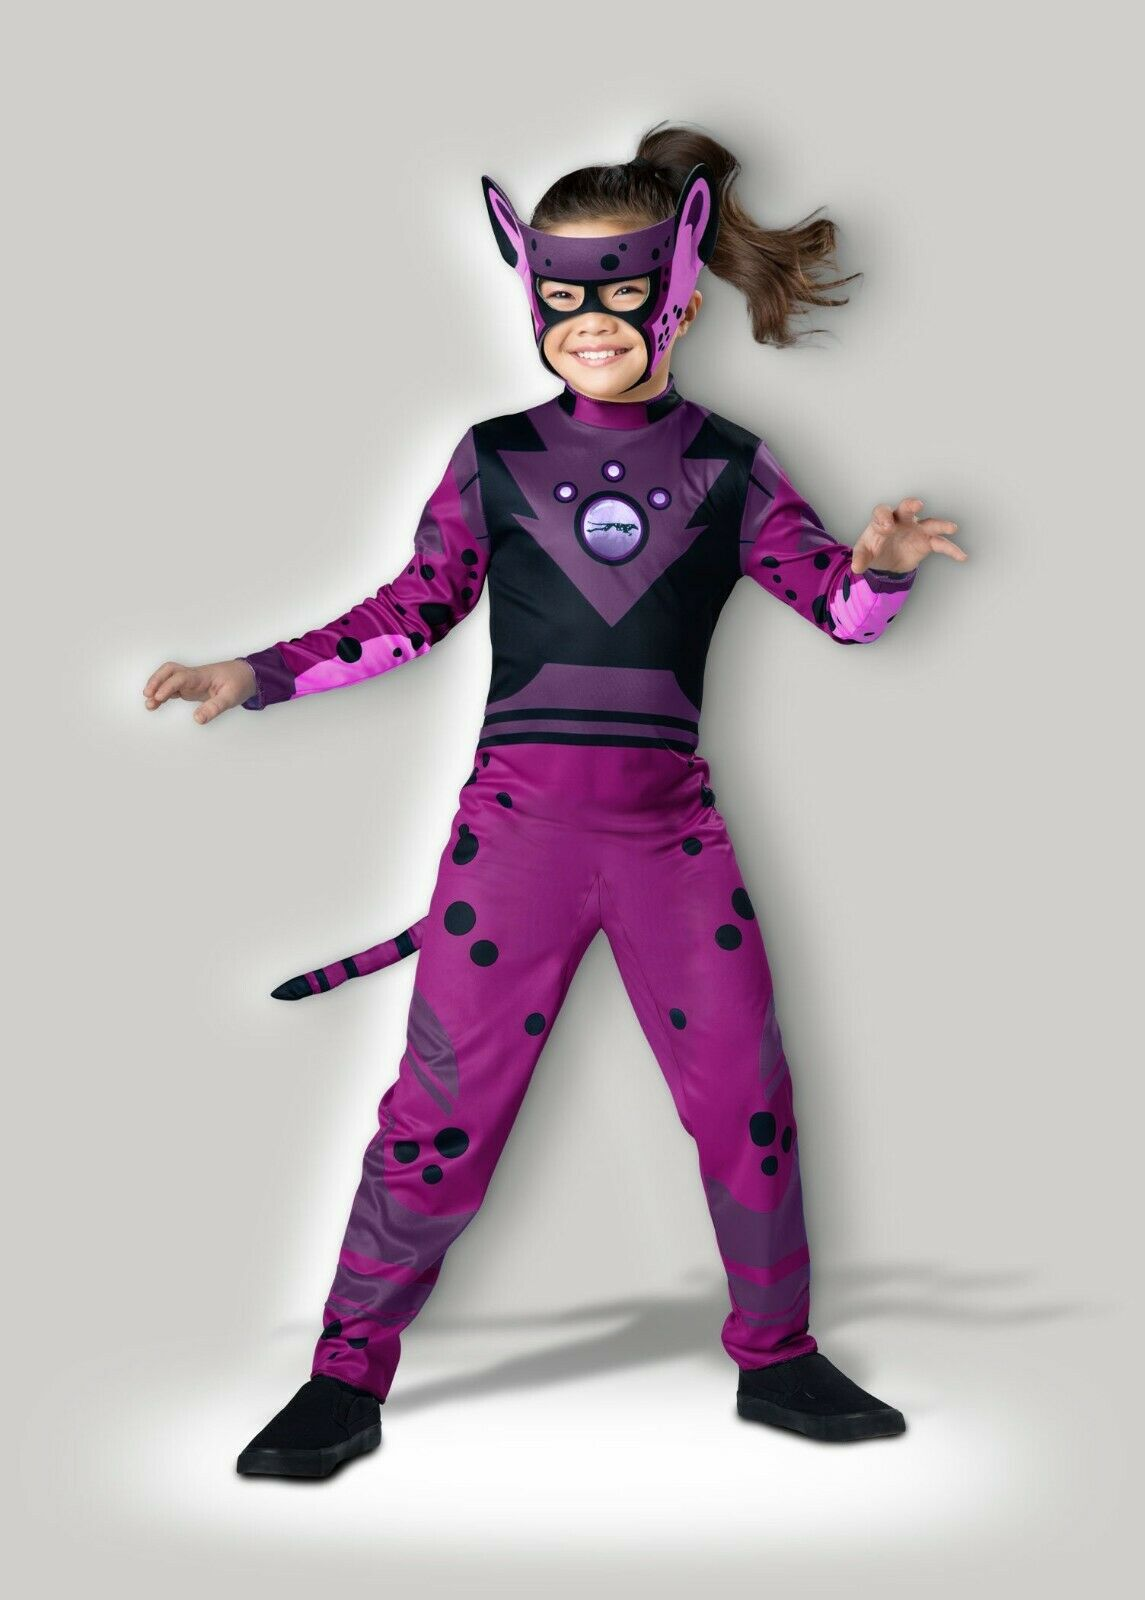 One Color Wild Kratts InCharacter Costumes Cheetah-Green Costume 6